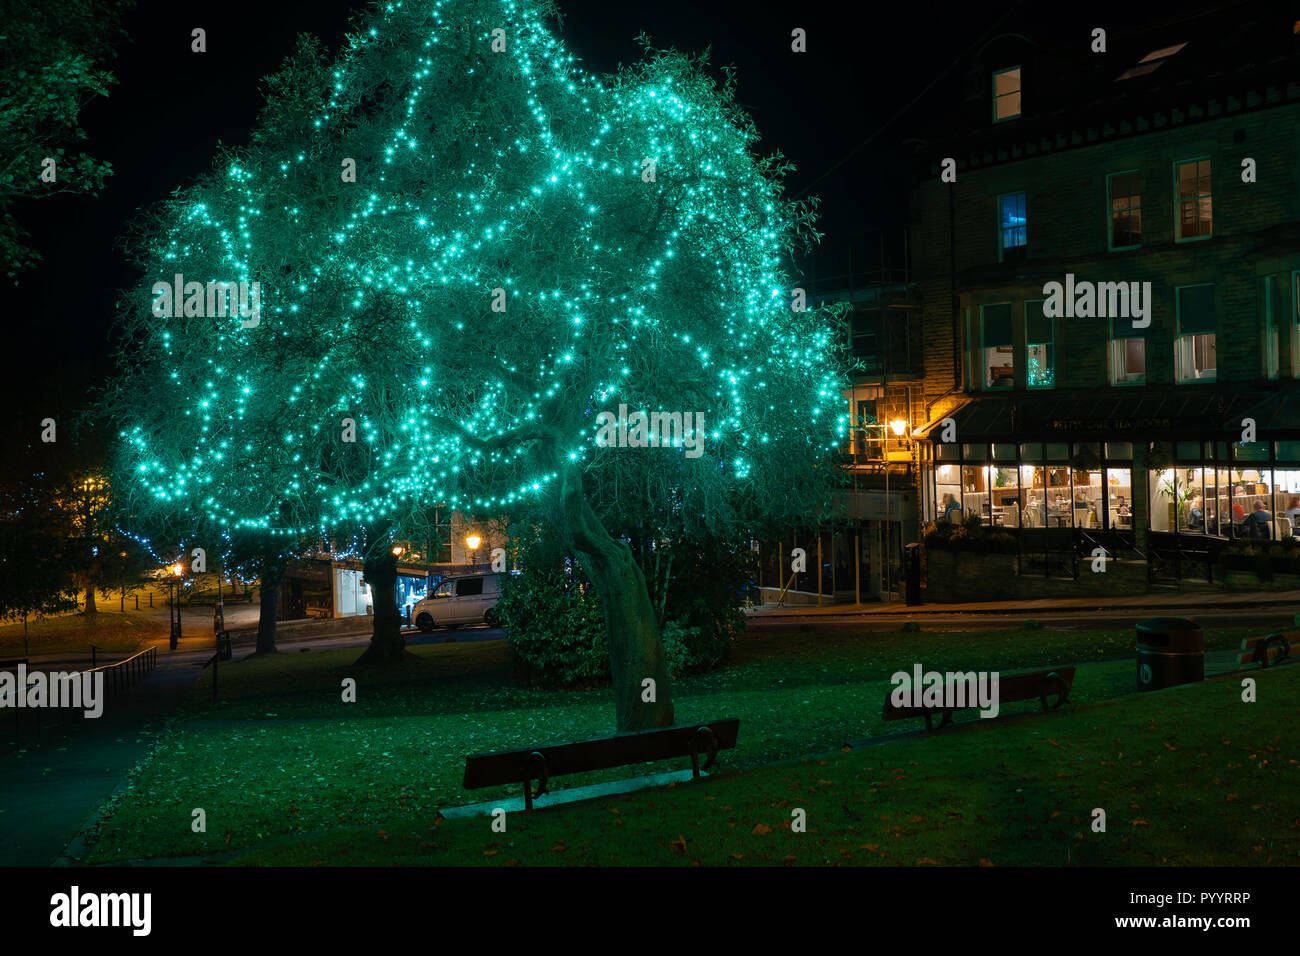 Green lights hanging from a tree at night in Harrogate,North Yorkshire,England. - Stock Image